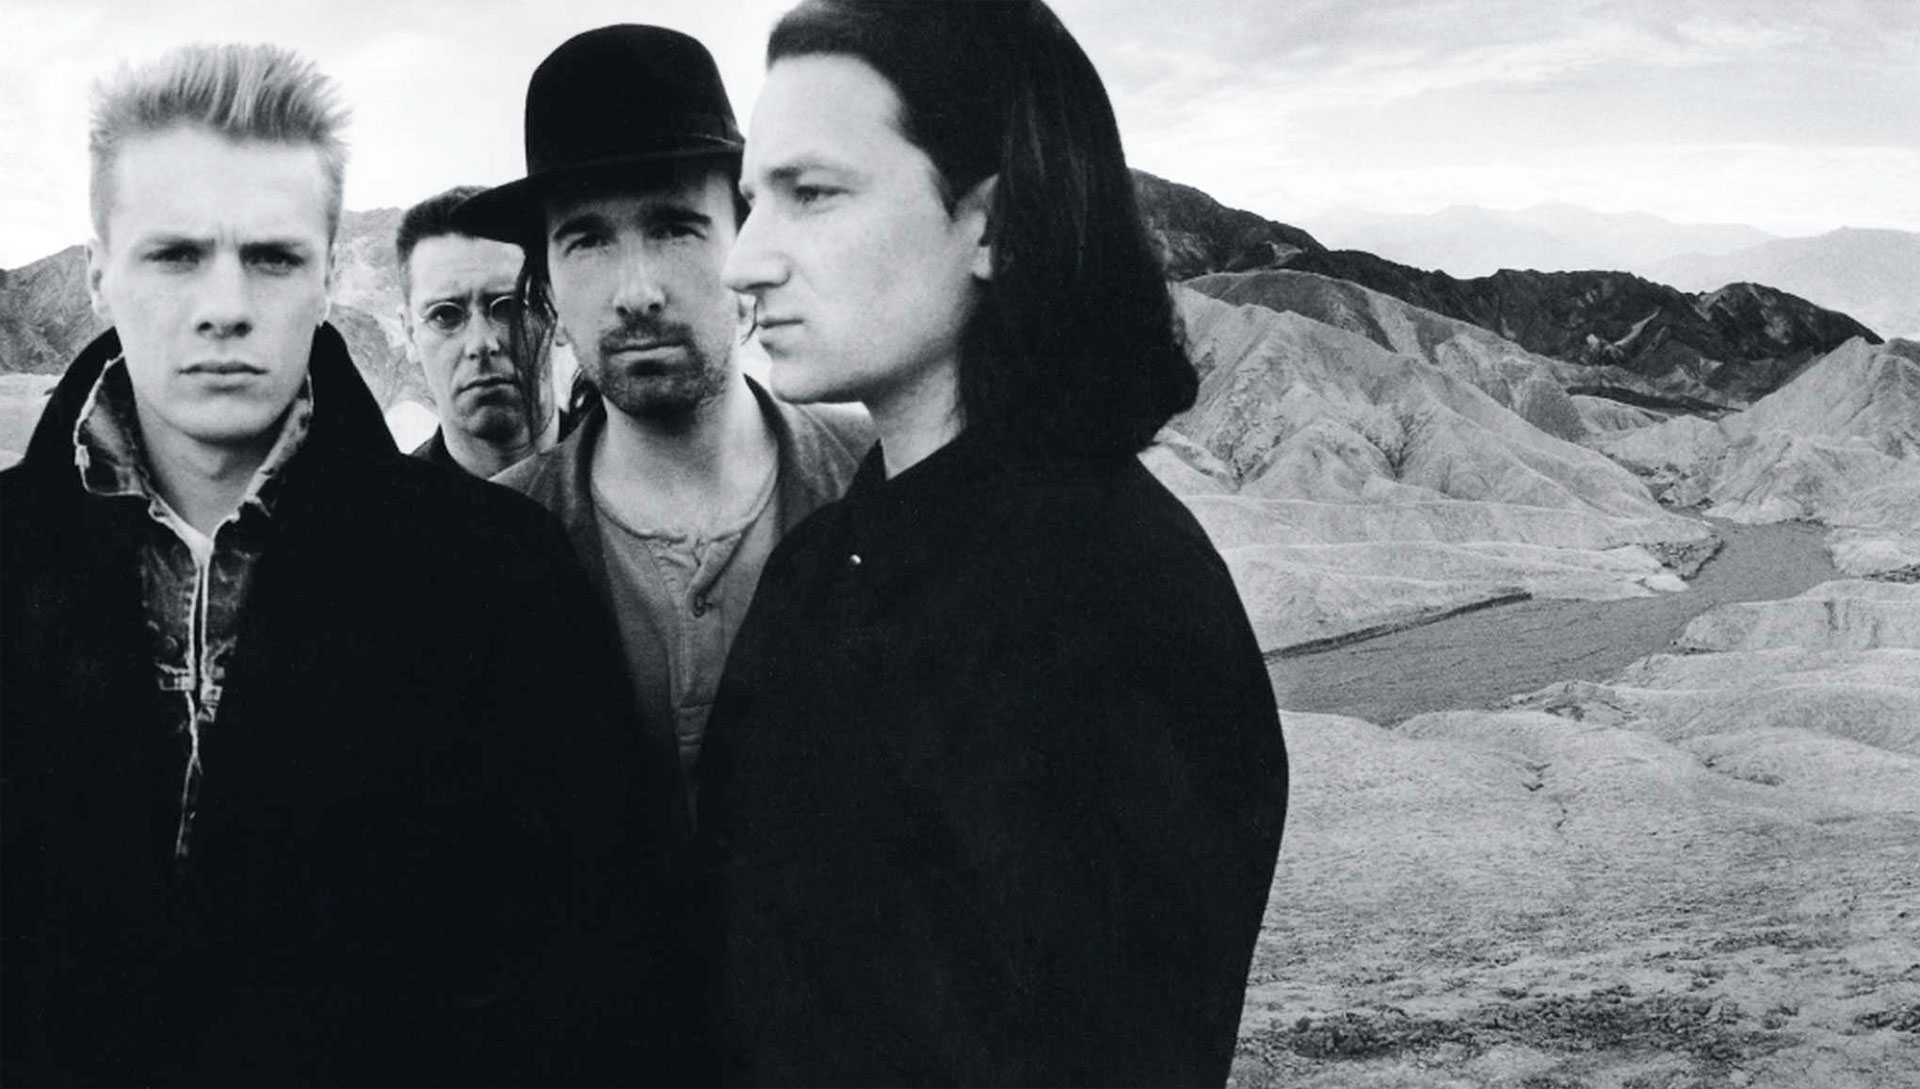 Revisiting the Joshua Tree 30 years later